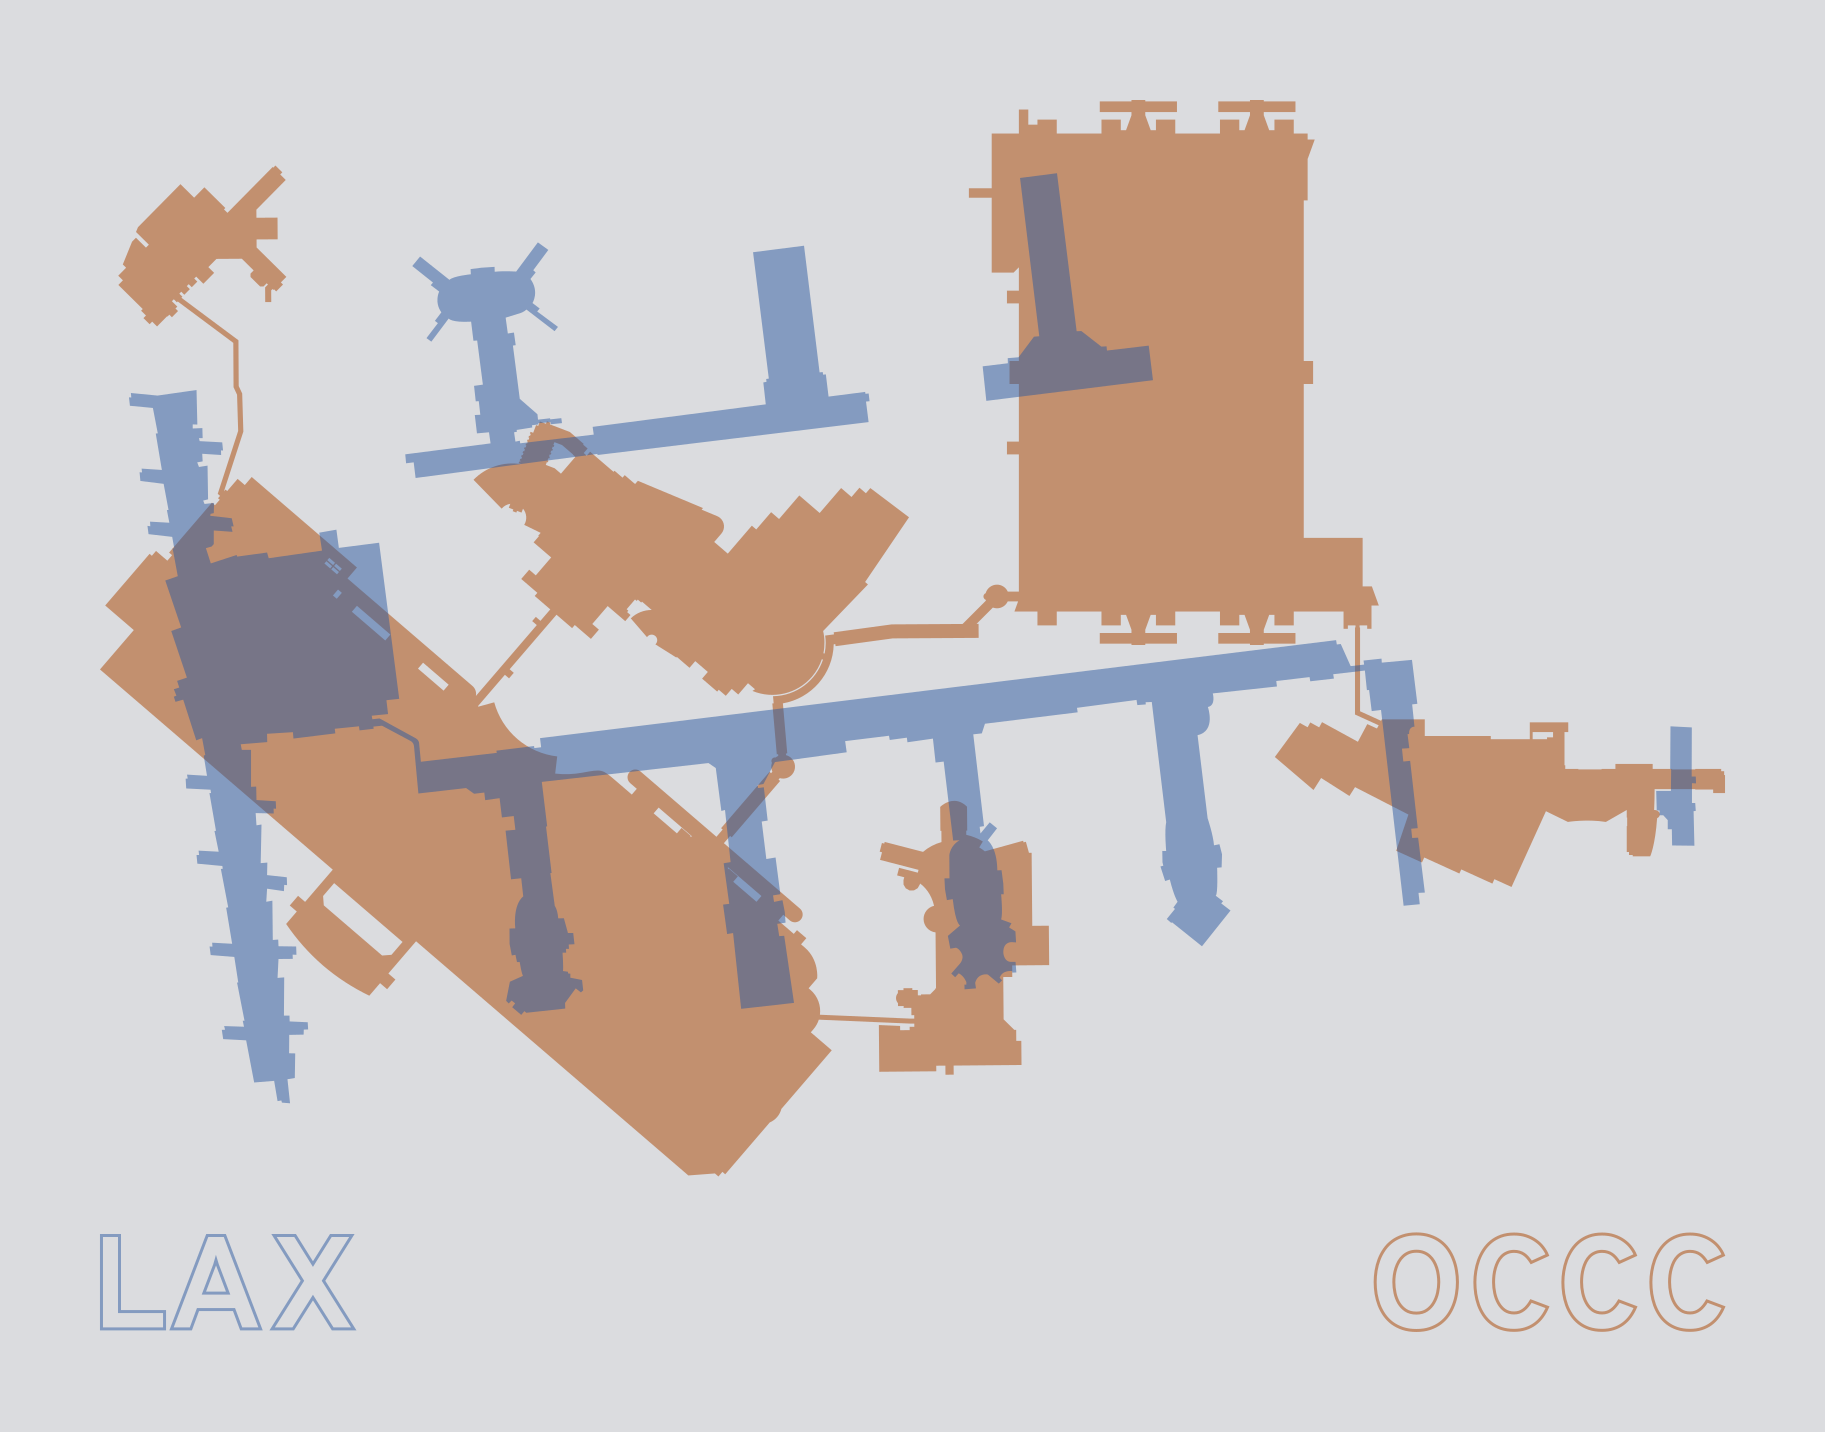 Silhouettes of the Orange County Convention Center and LAX overlaid on each other. The OCCC is slightly larger than LAX.